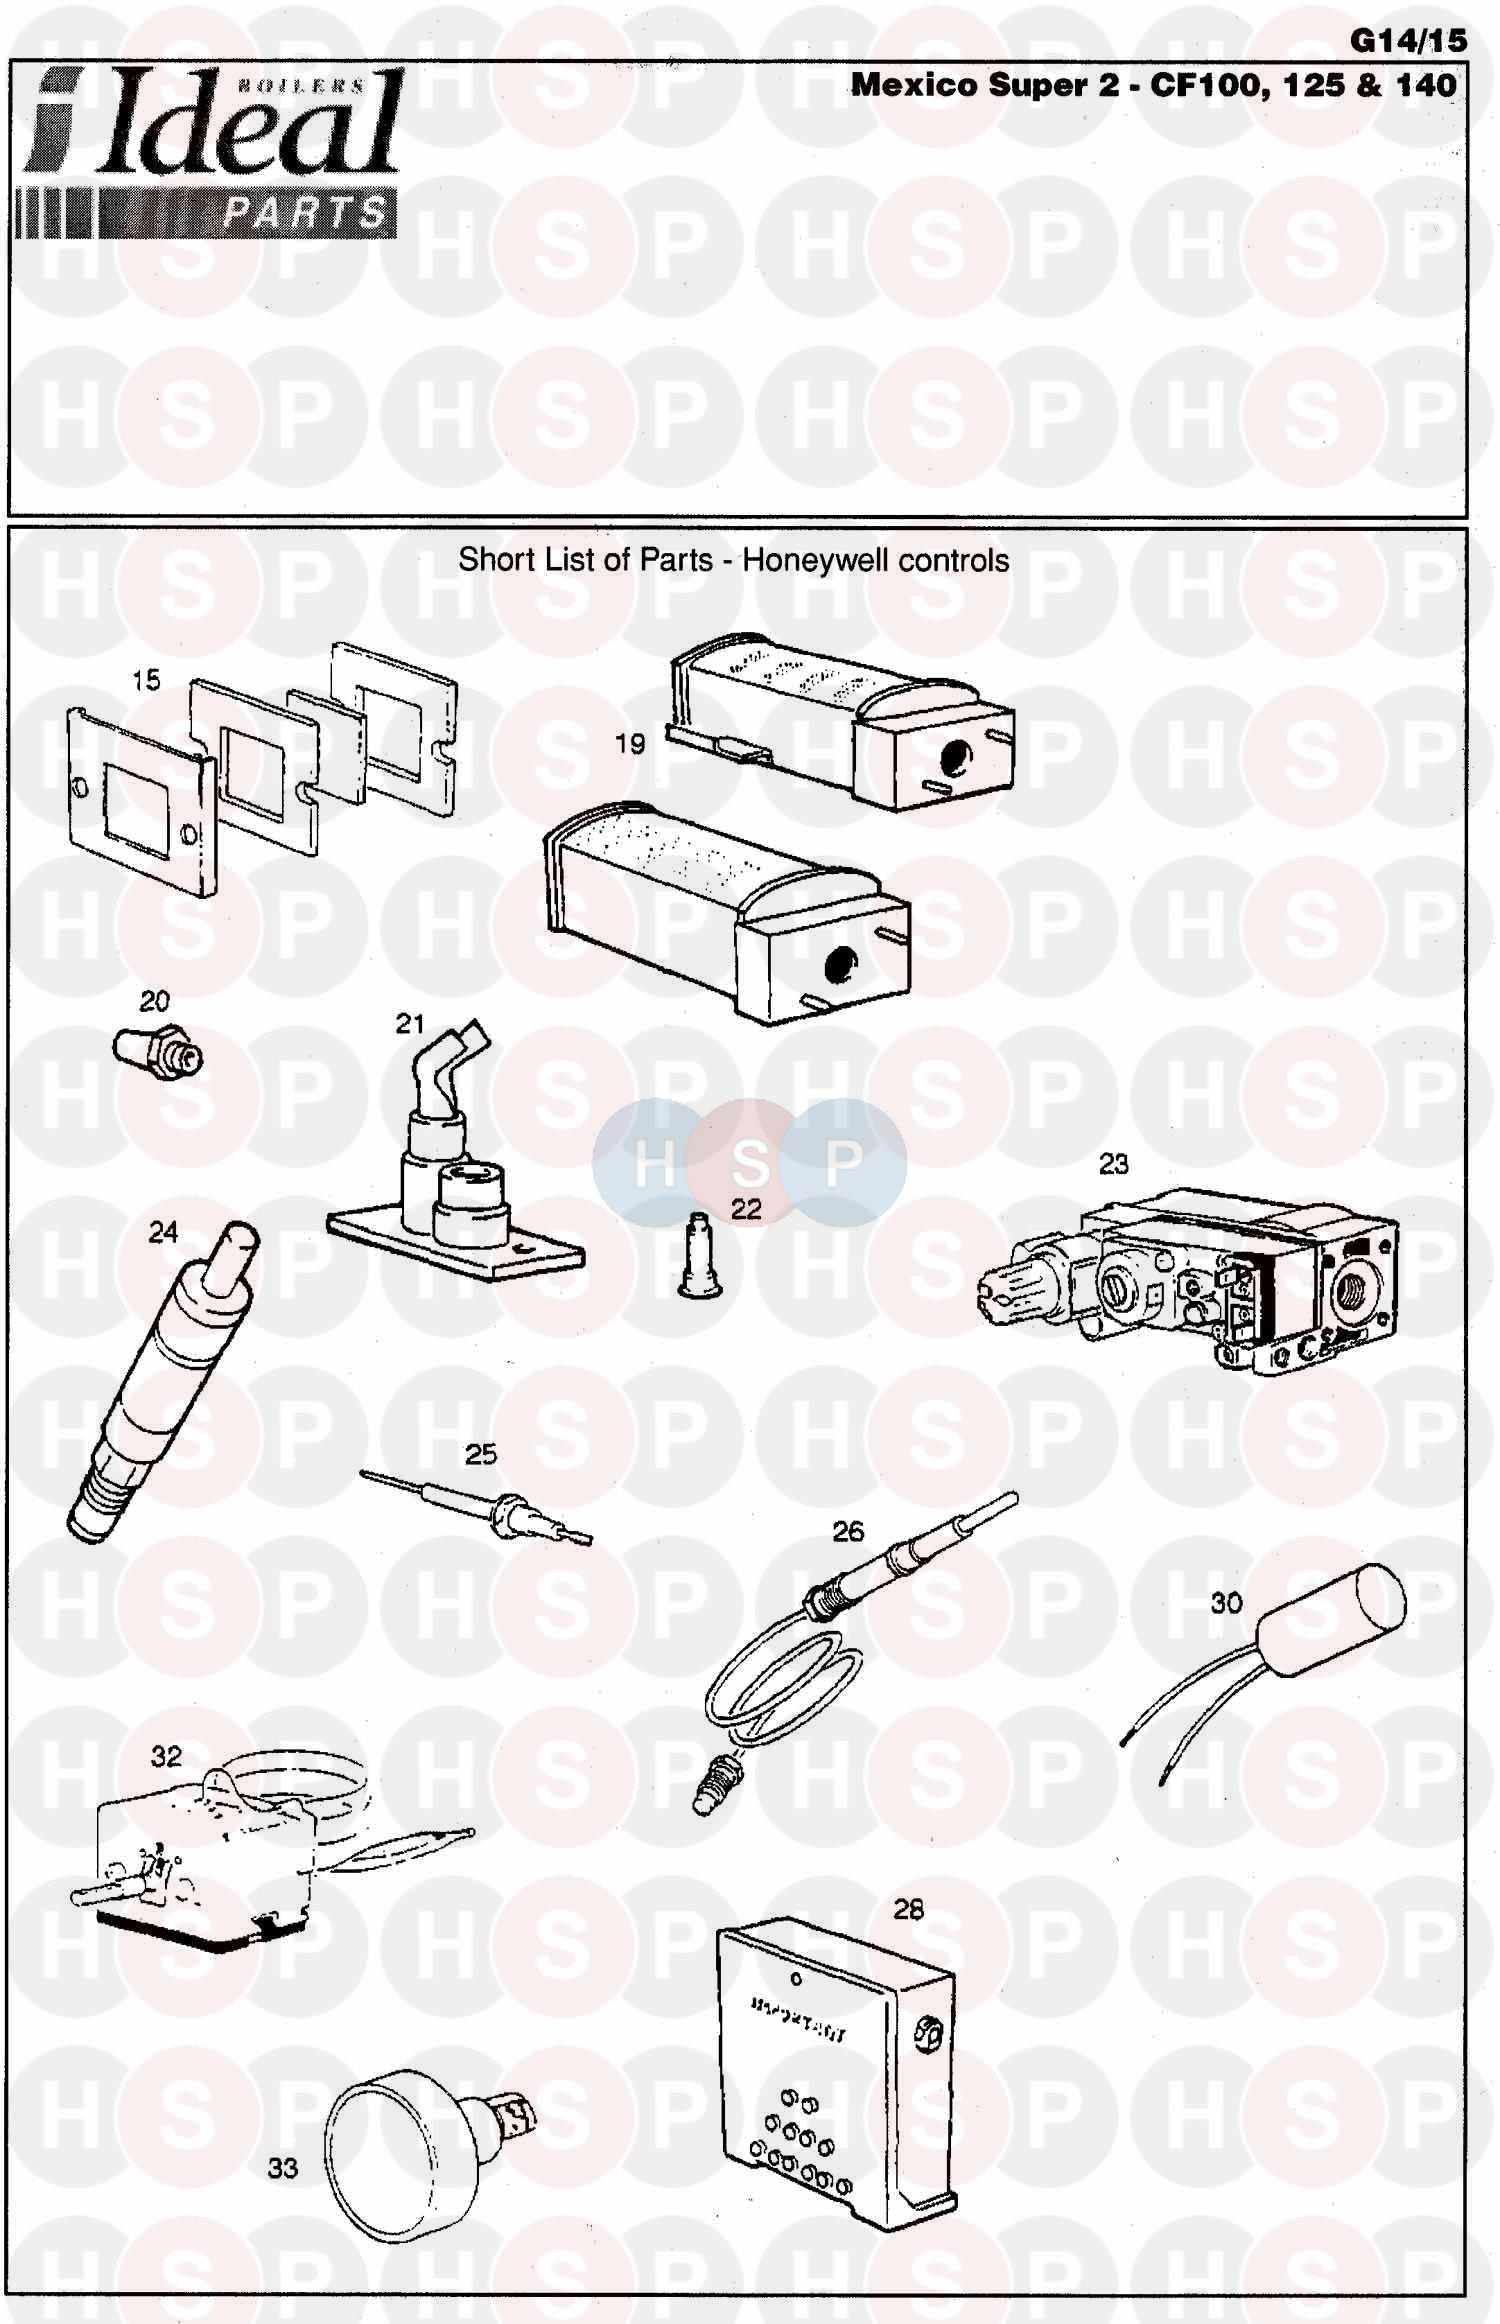 Ideal MEXICO SUPER 2 CF 140 Appliance Diagram (First Line